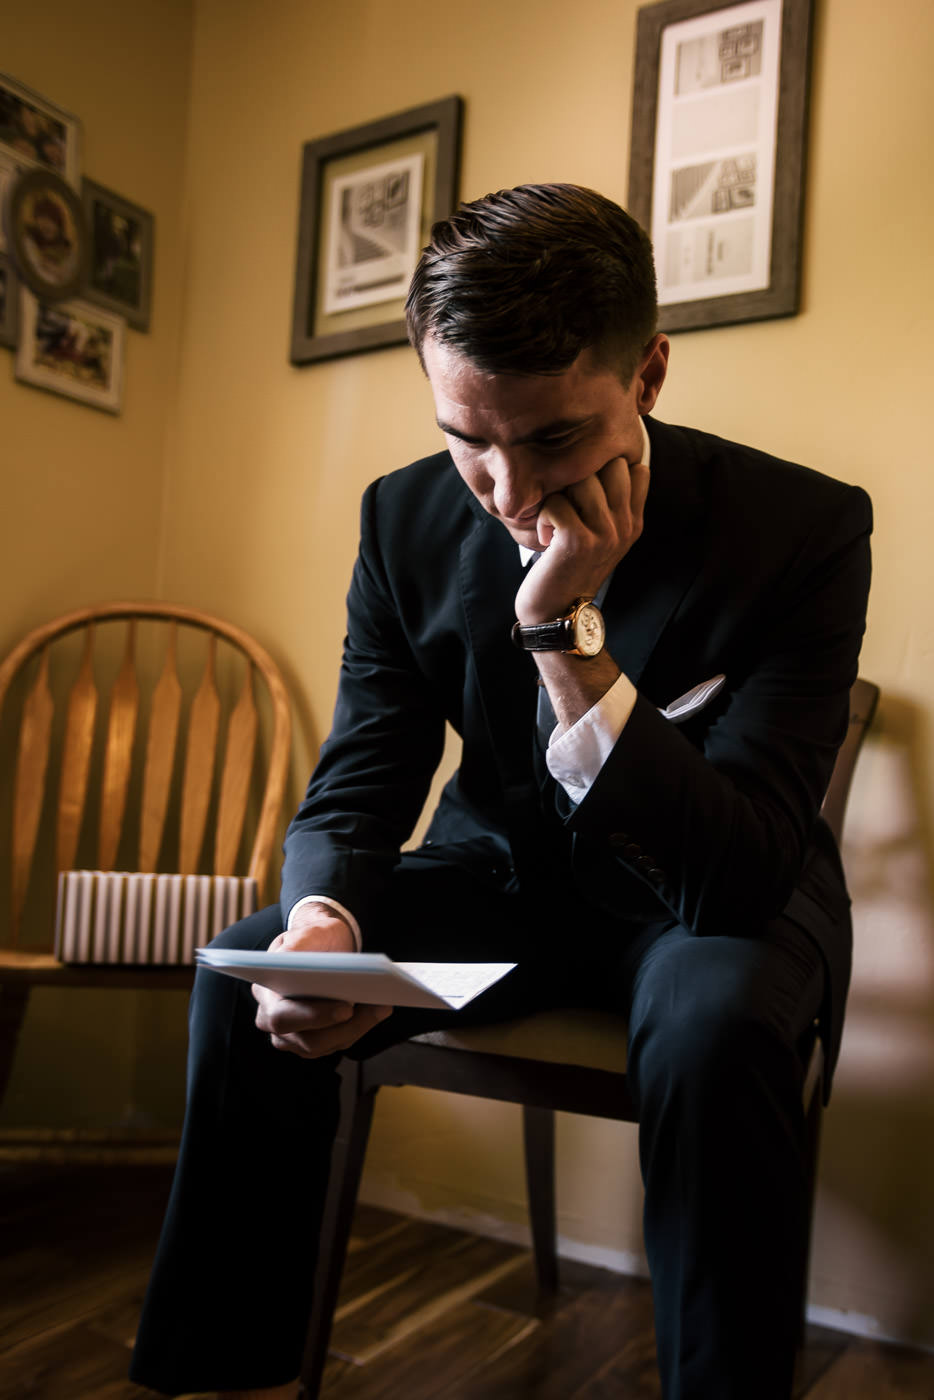 Groom takes a seat on a wooden chair in his suite to read a touching love letter from his bride to be before their wedding in Temecula.